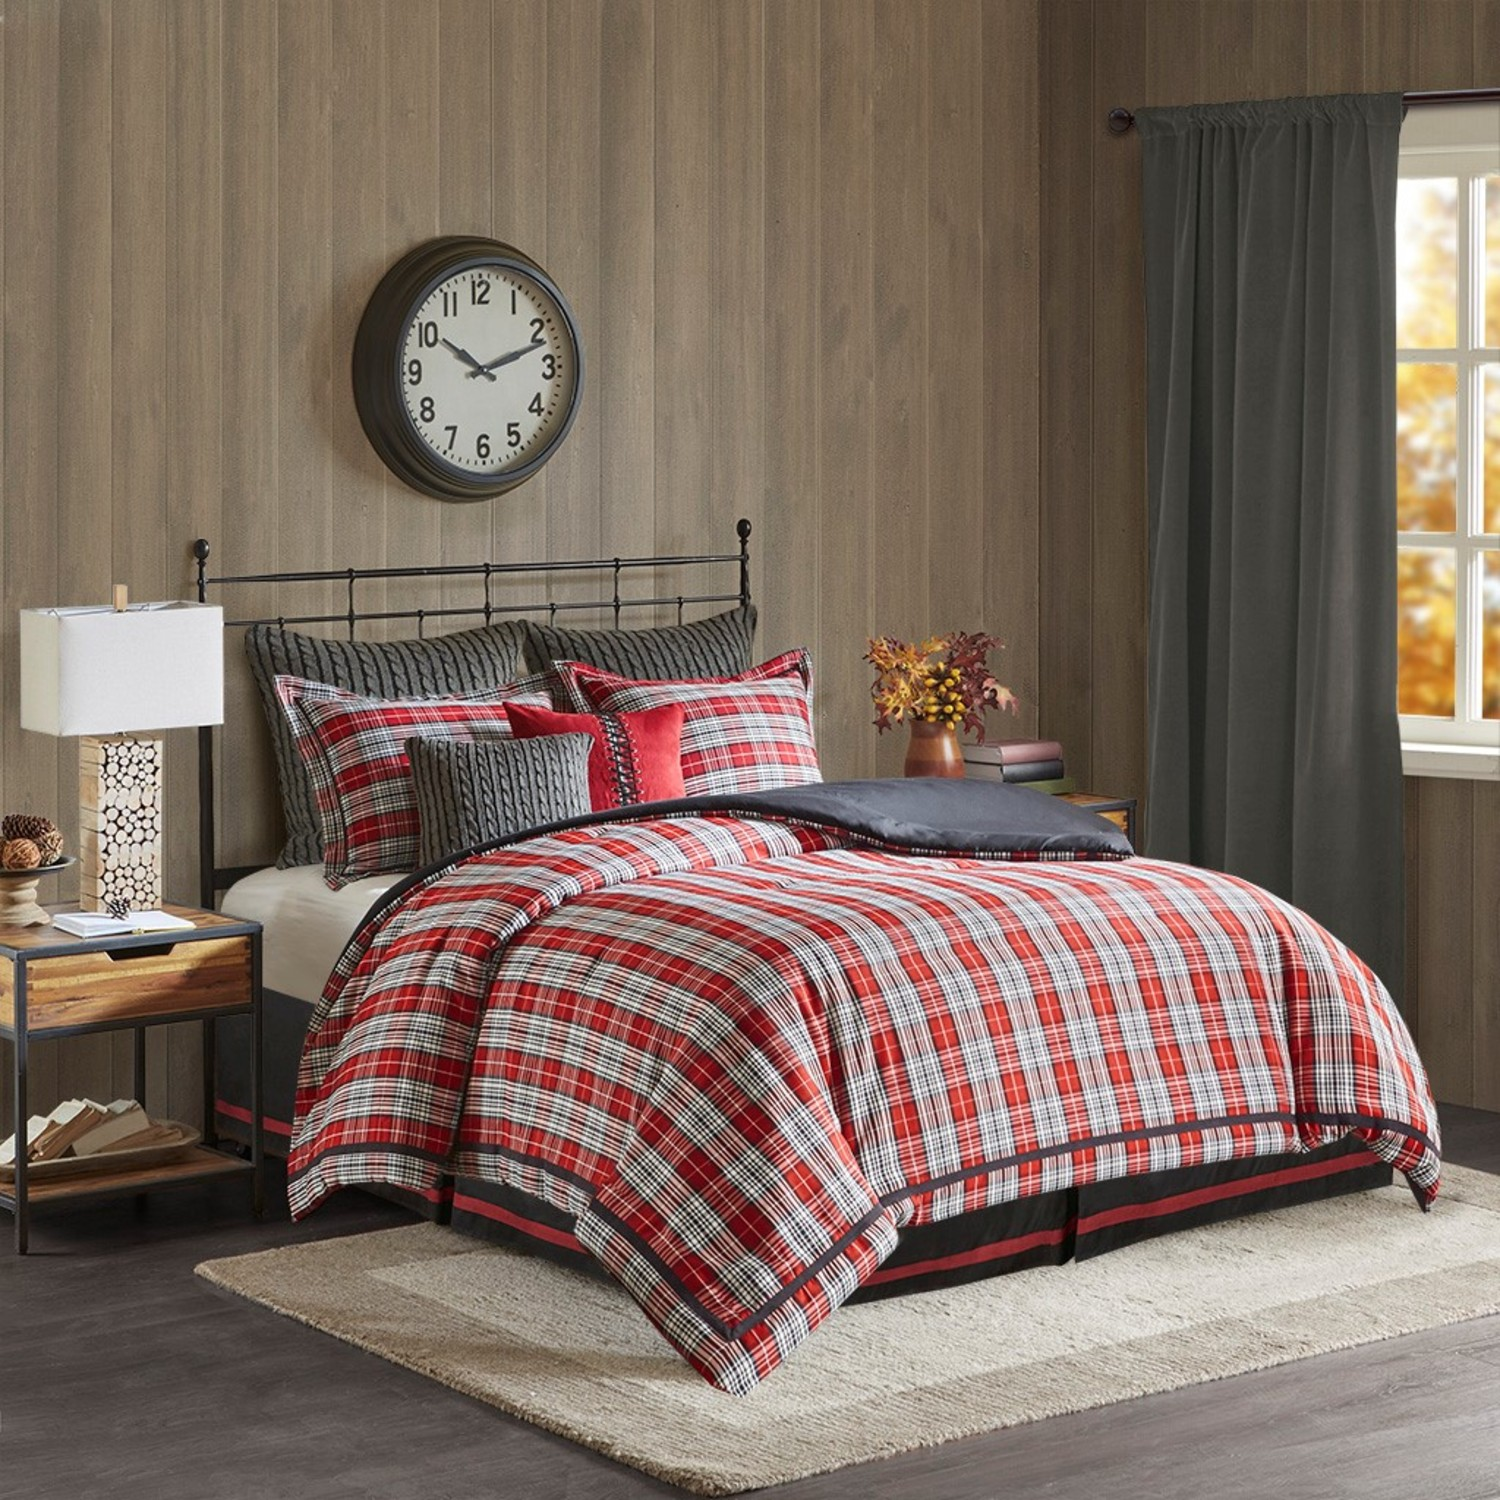 Bedding Decor: Williamsport Plaid By Woolrich